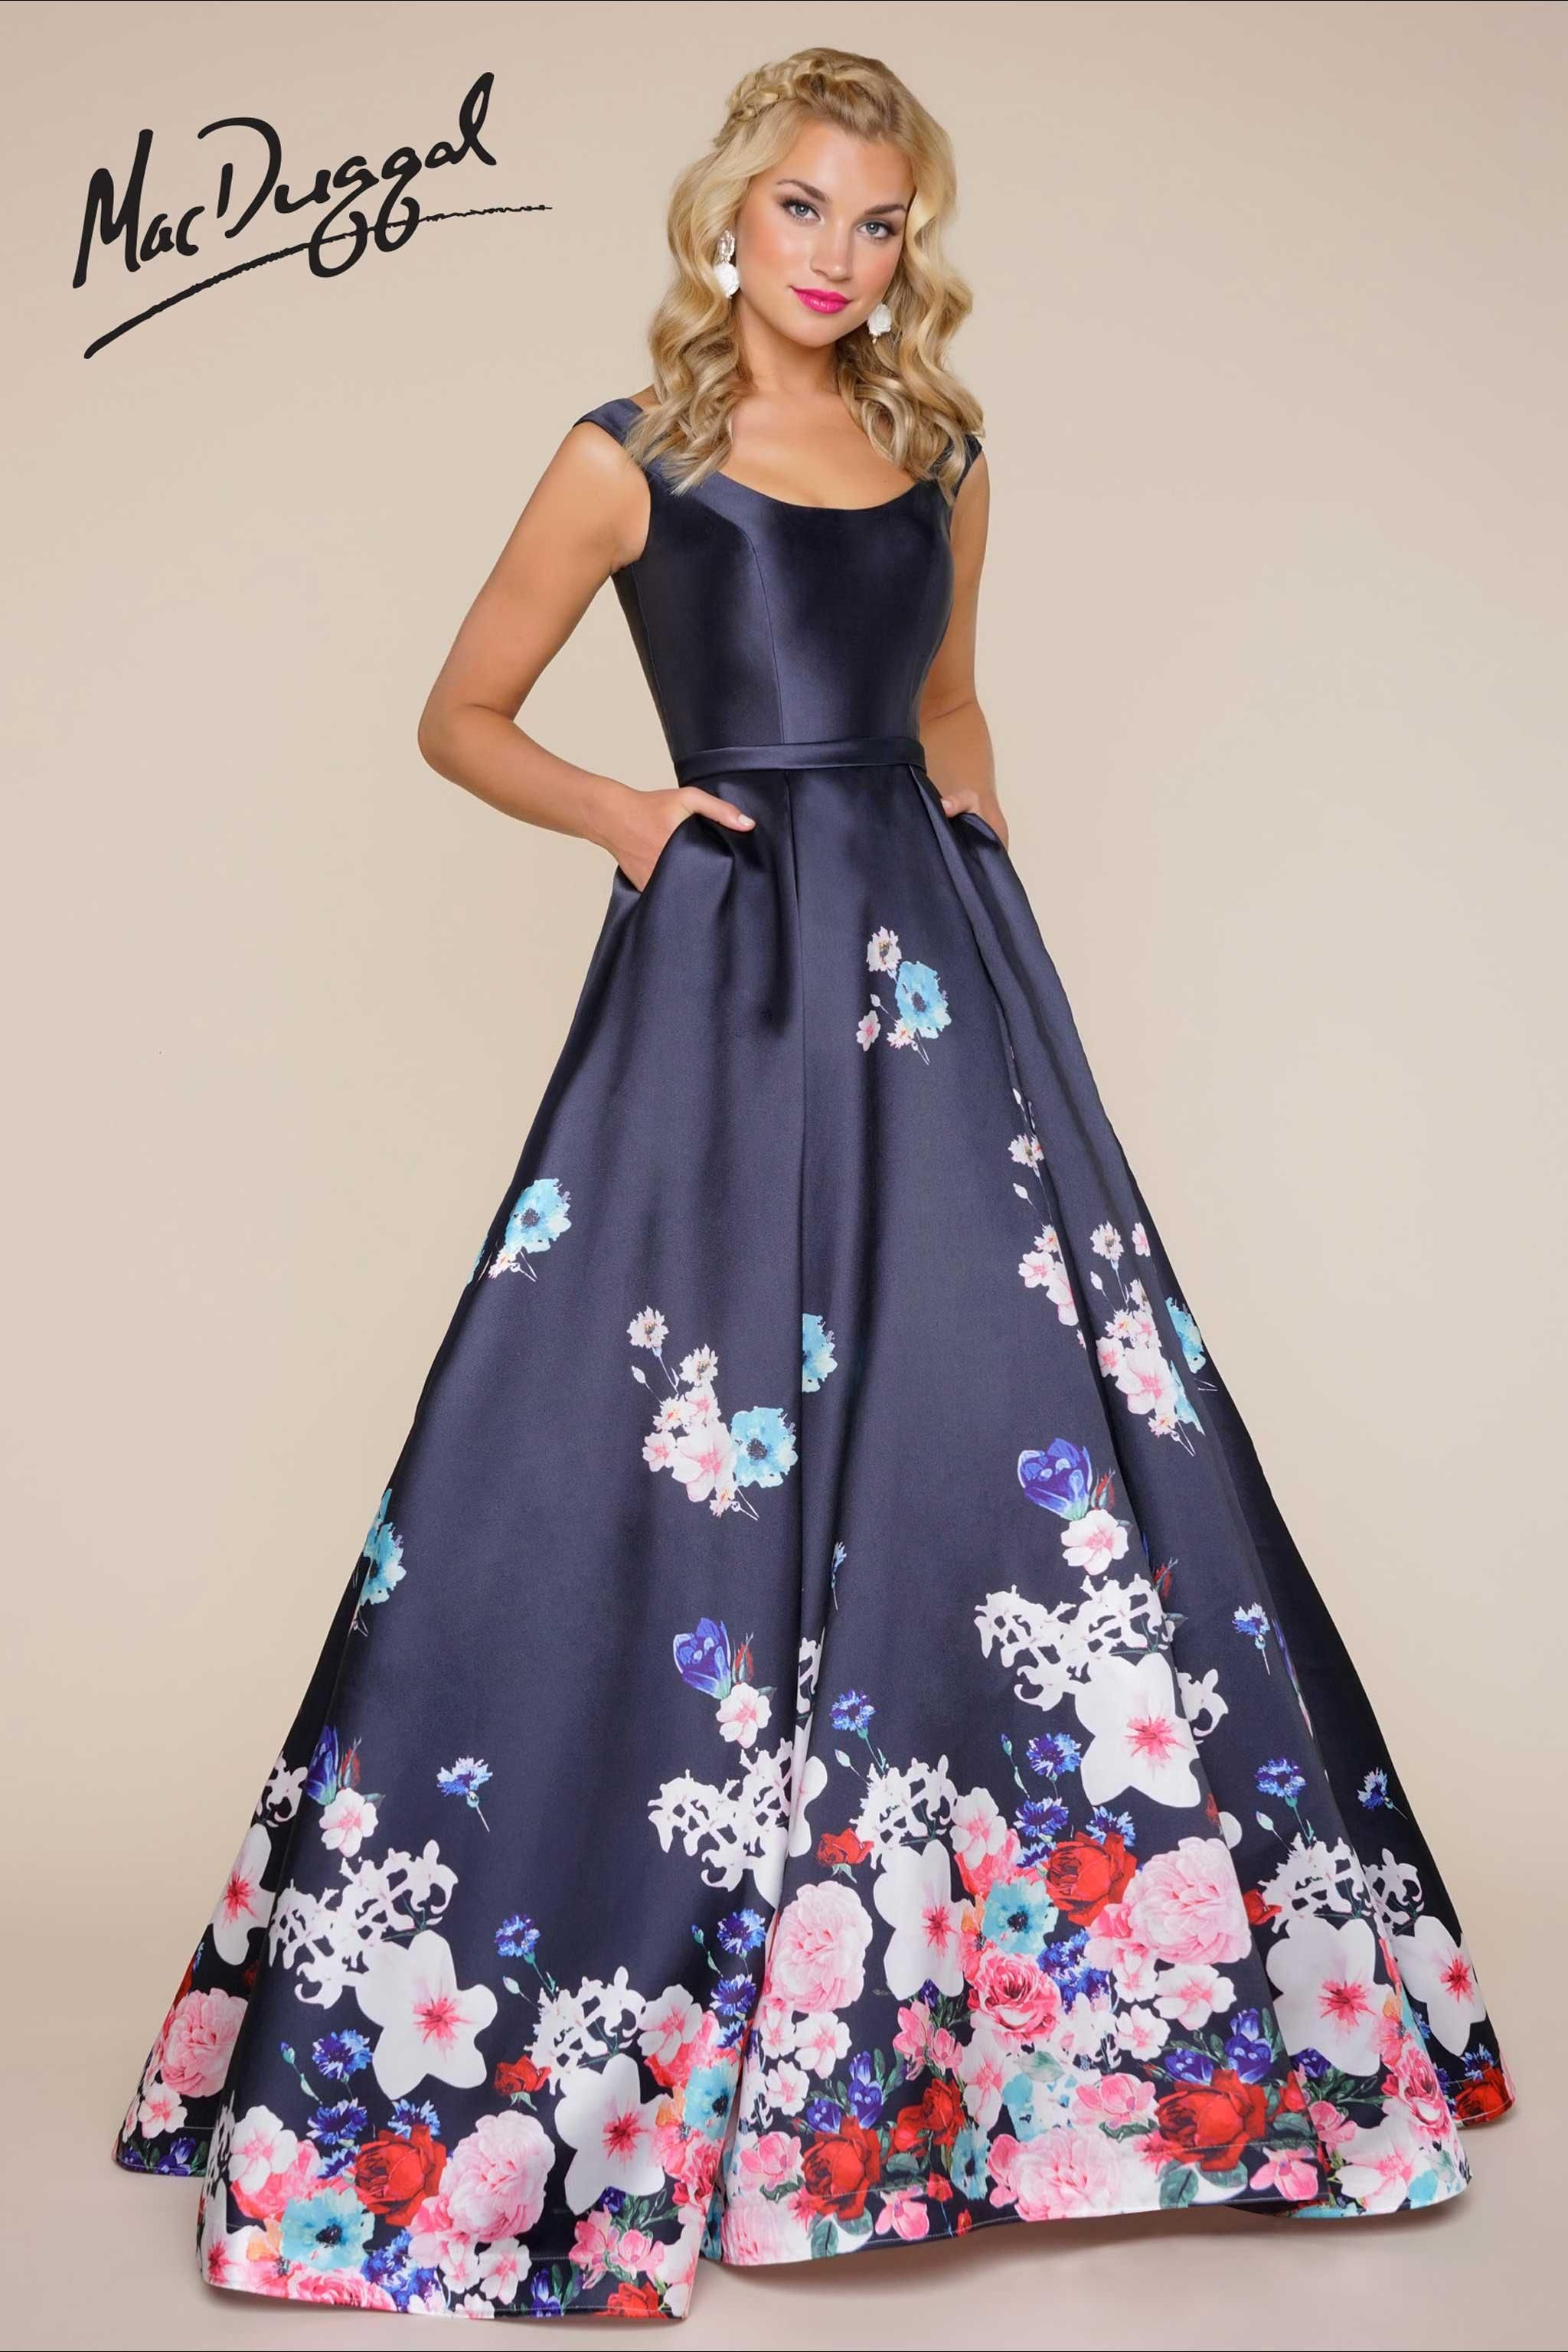 H mac duggal dresses pinterest ball gowns gowns and macs